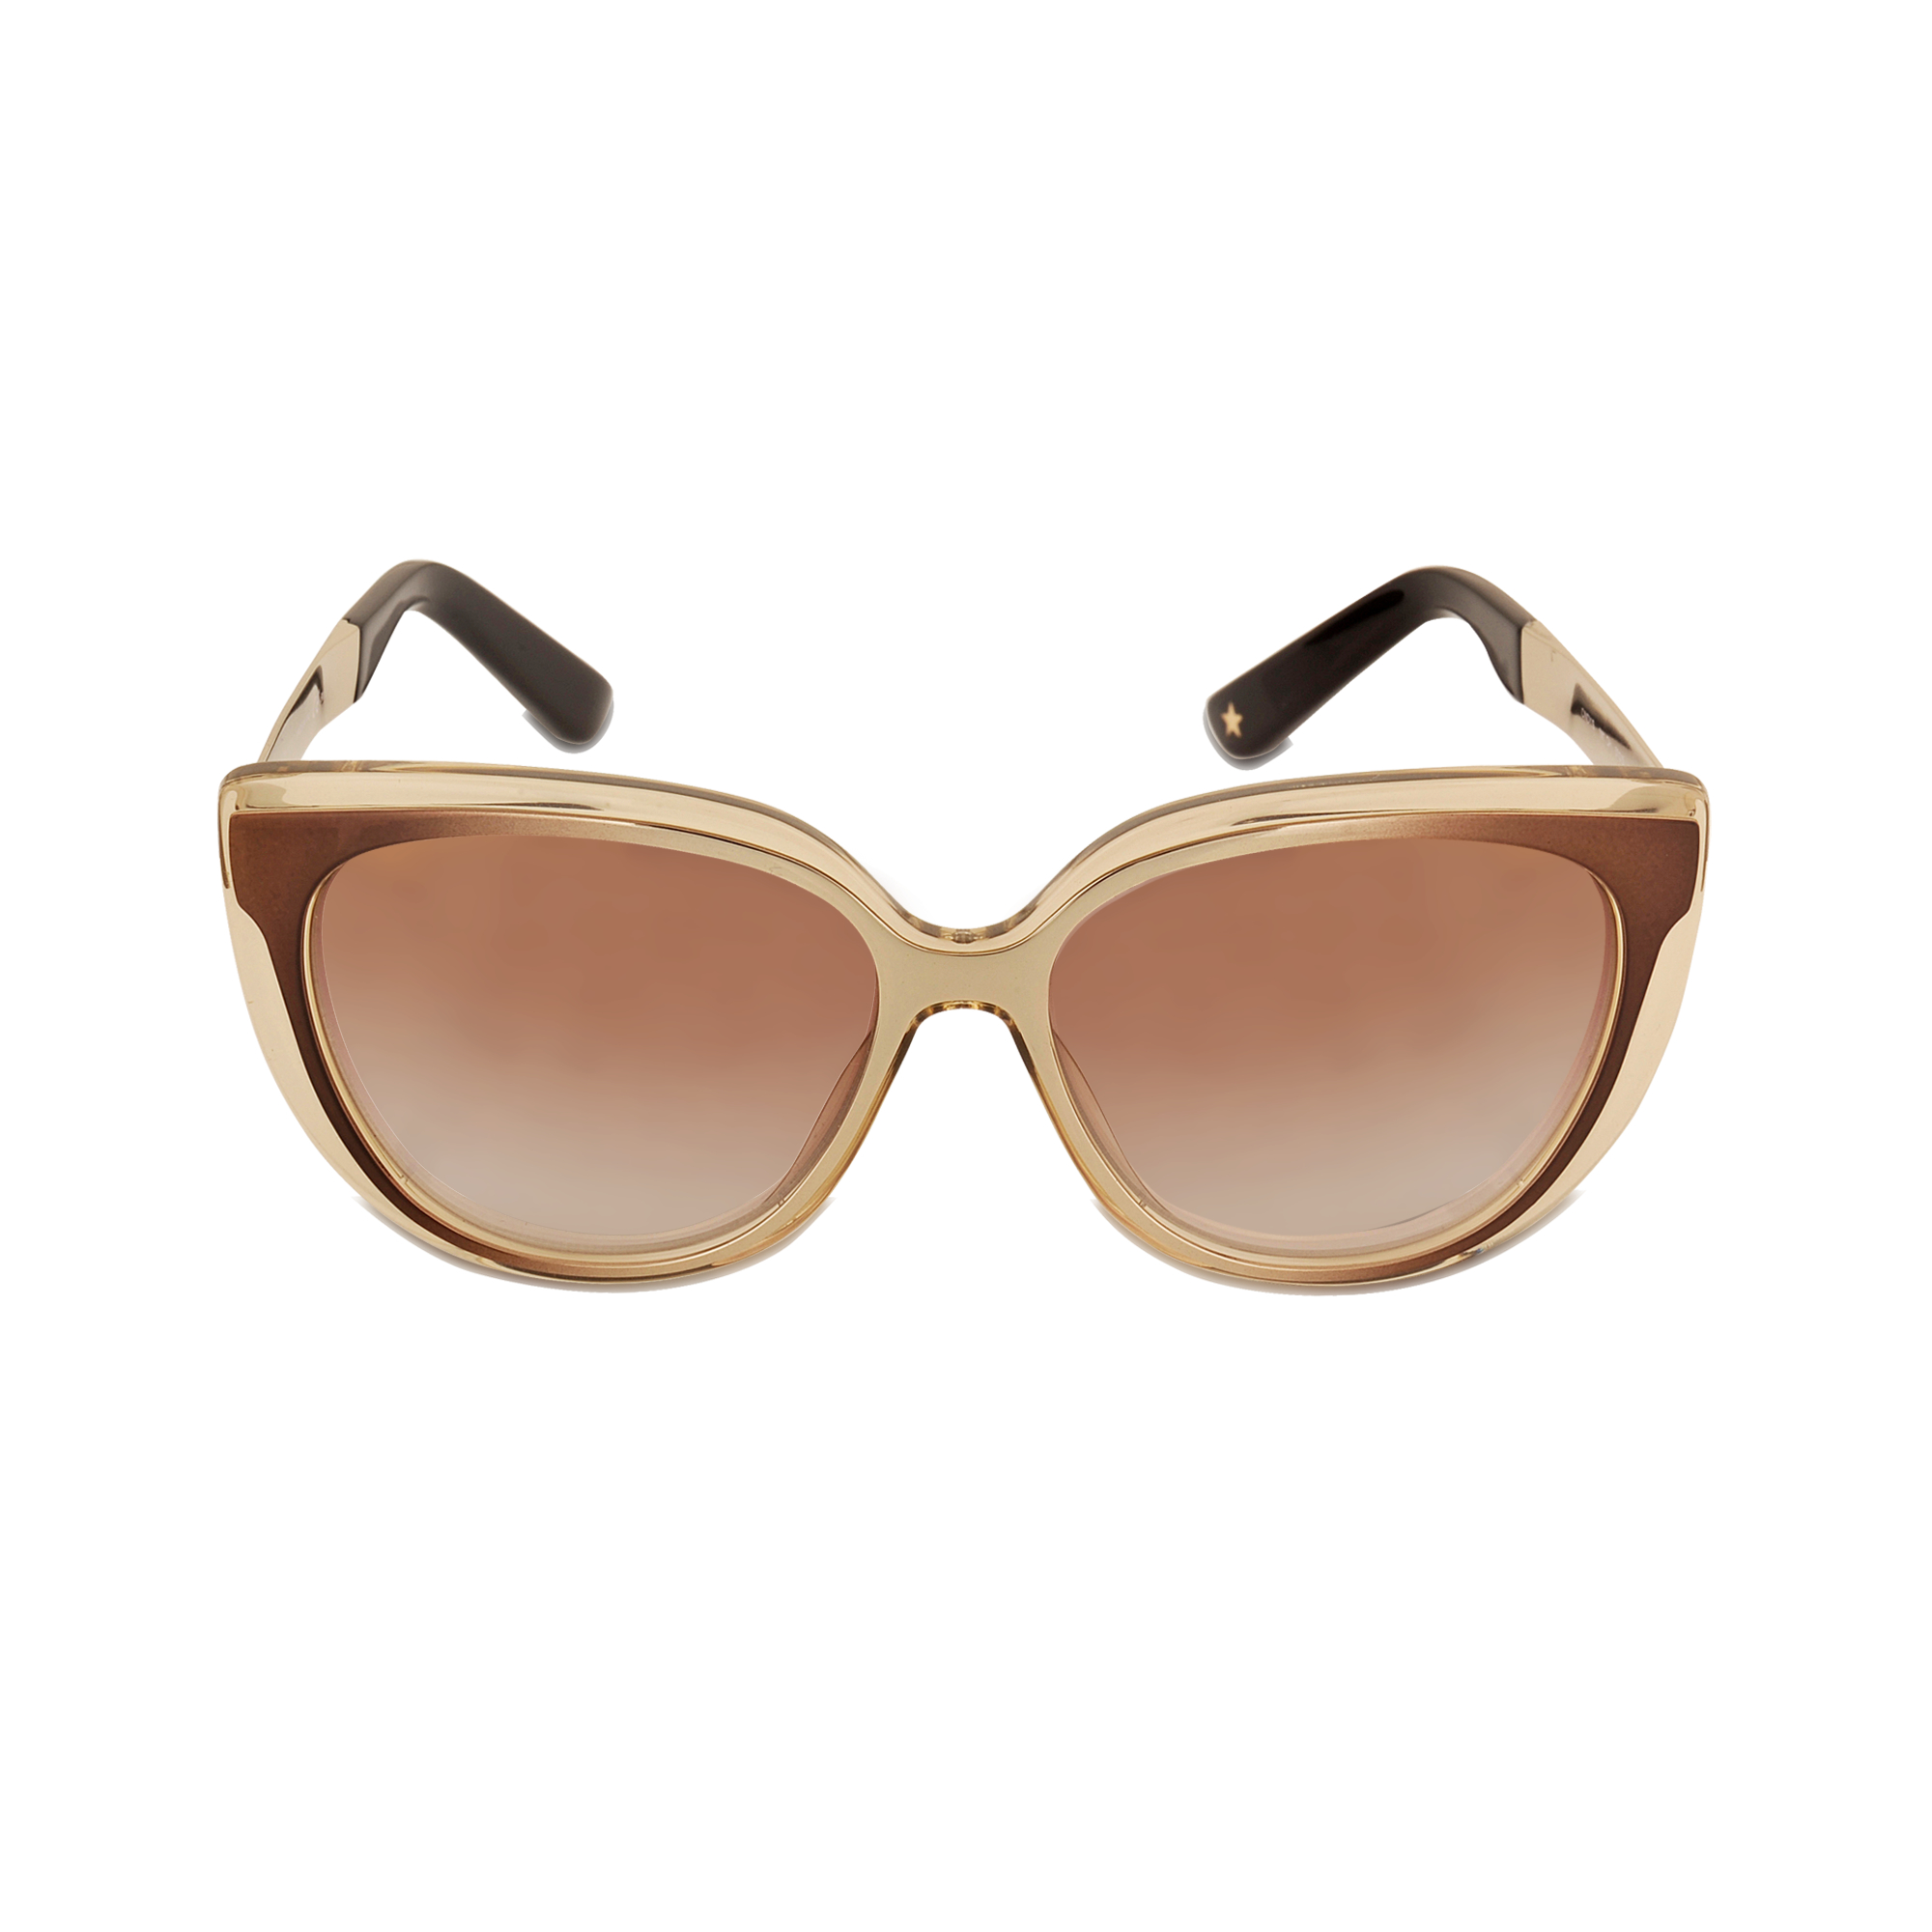 Jimmy choo Cindy/s Sunglasses in Natural